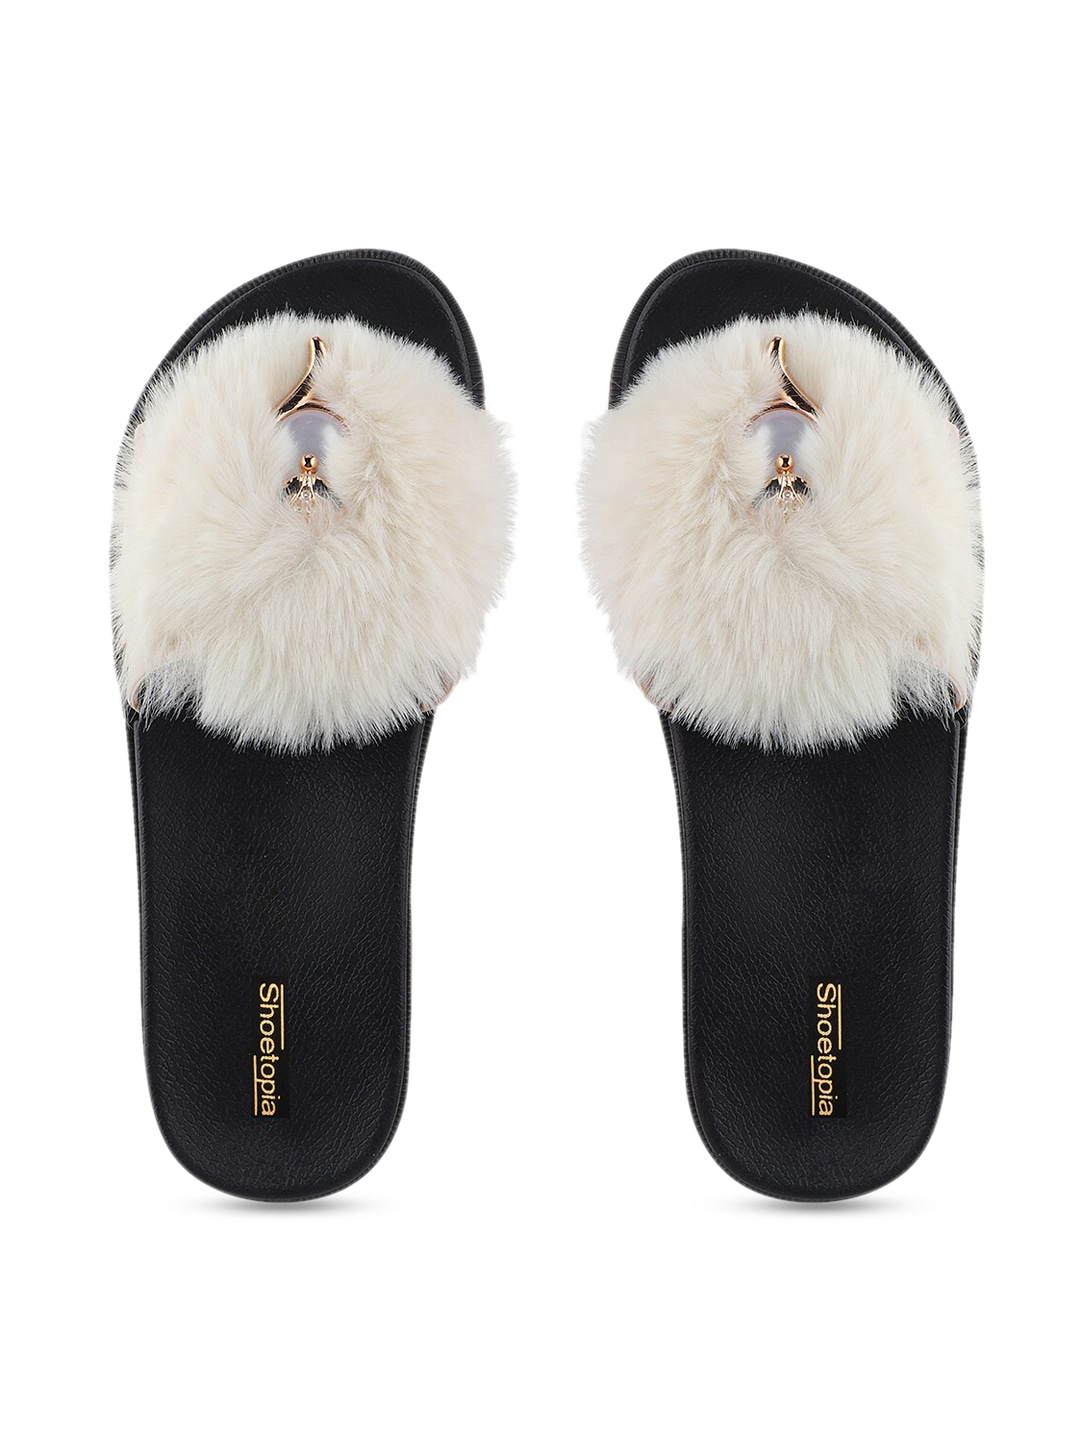 White Solid Room Slippers